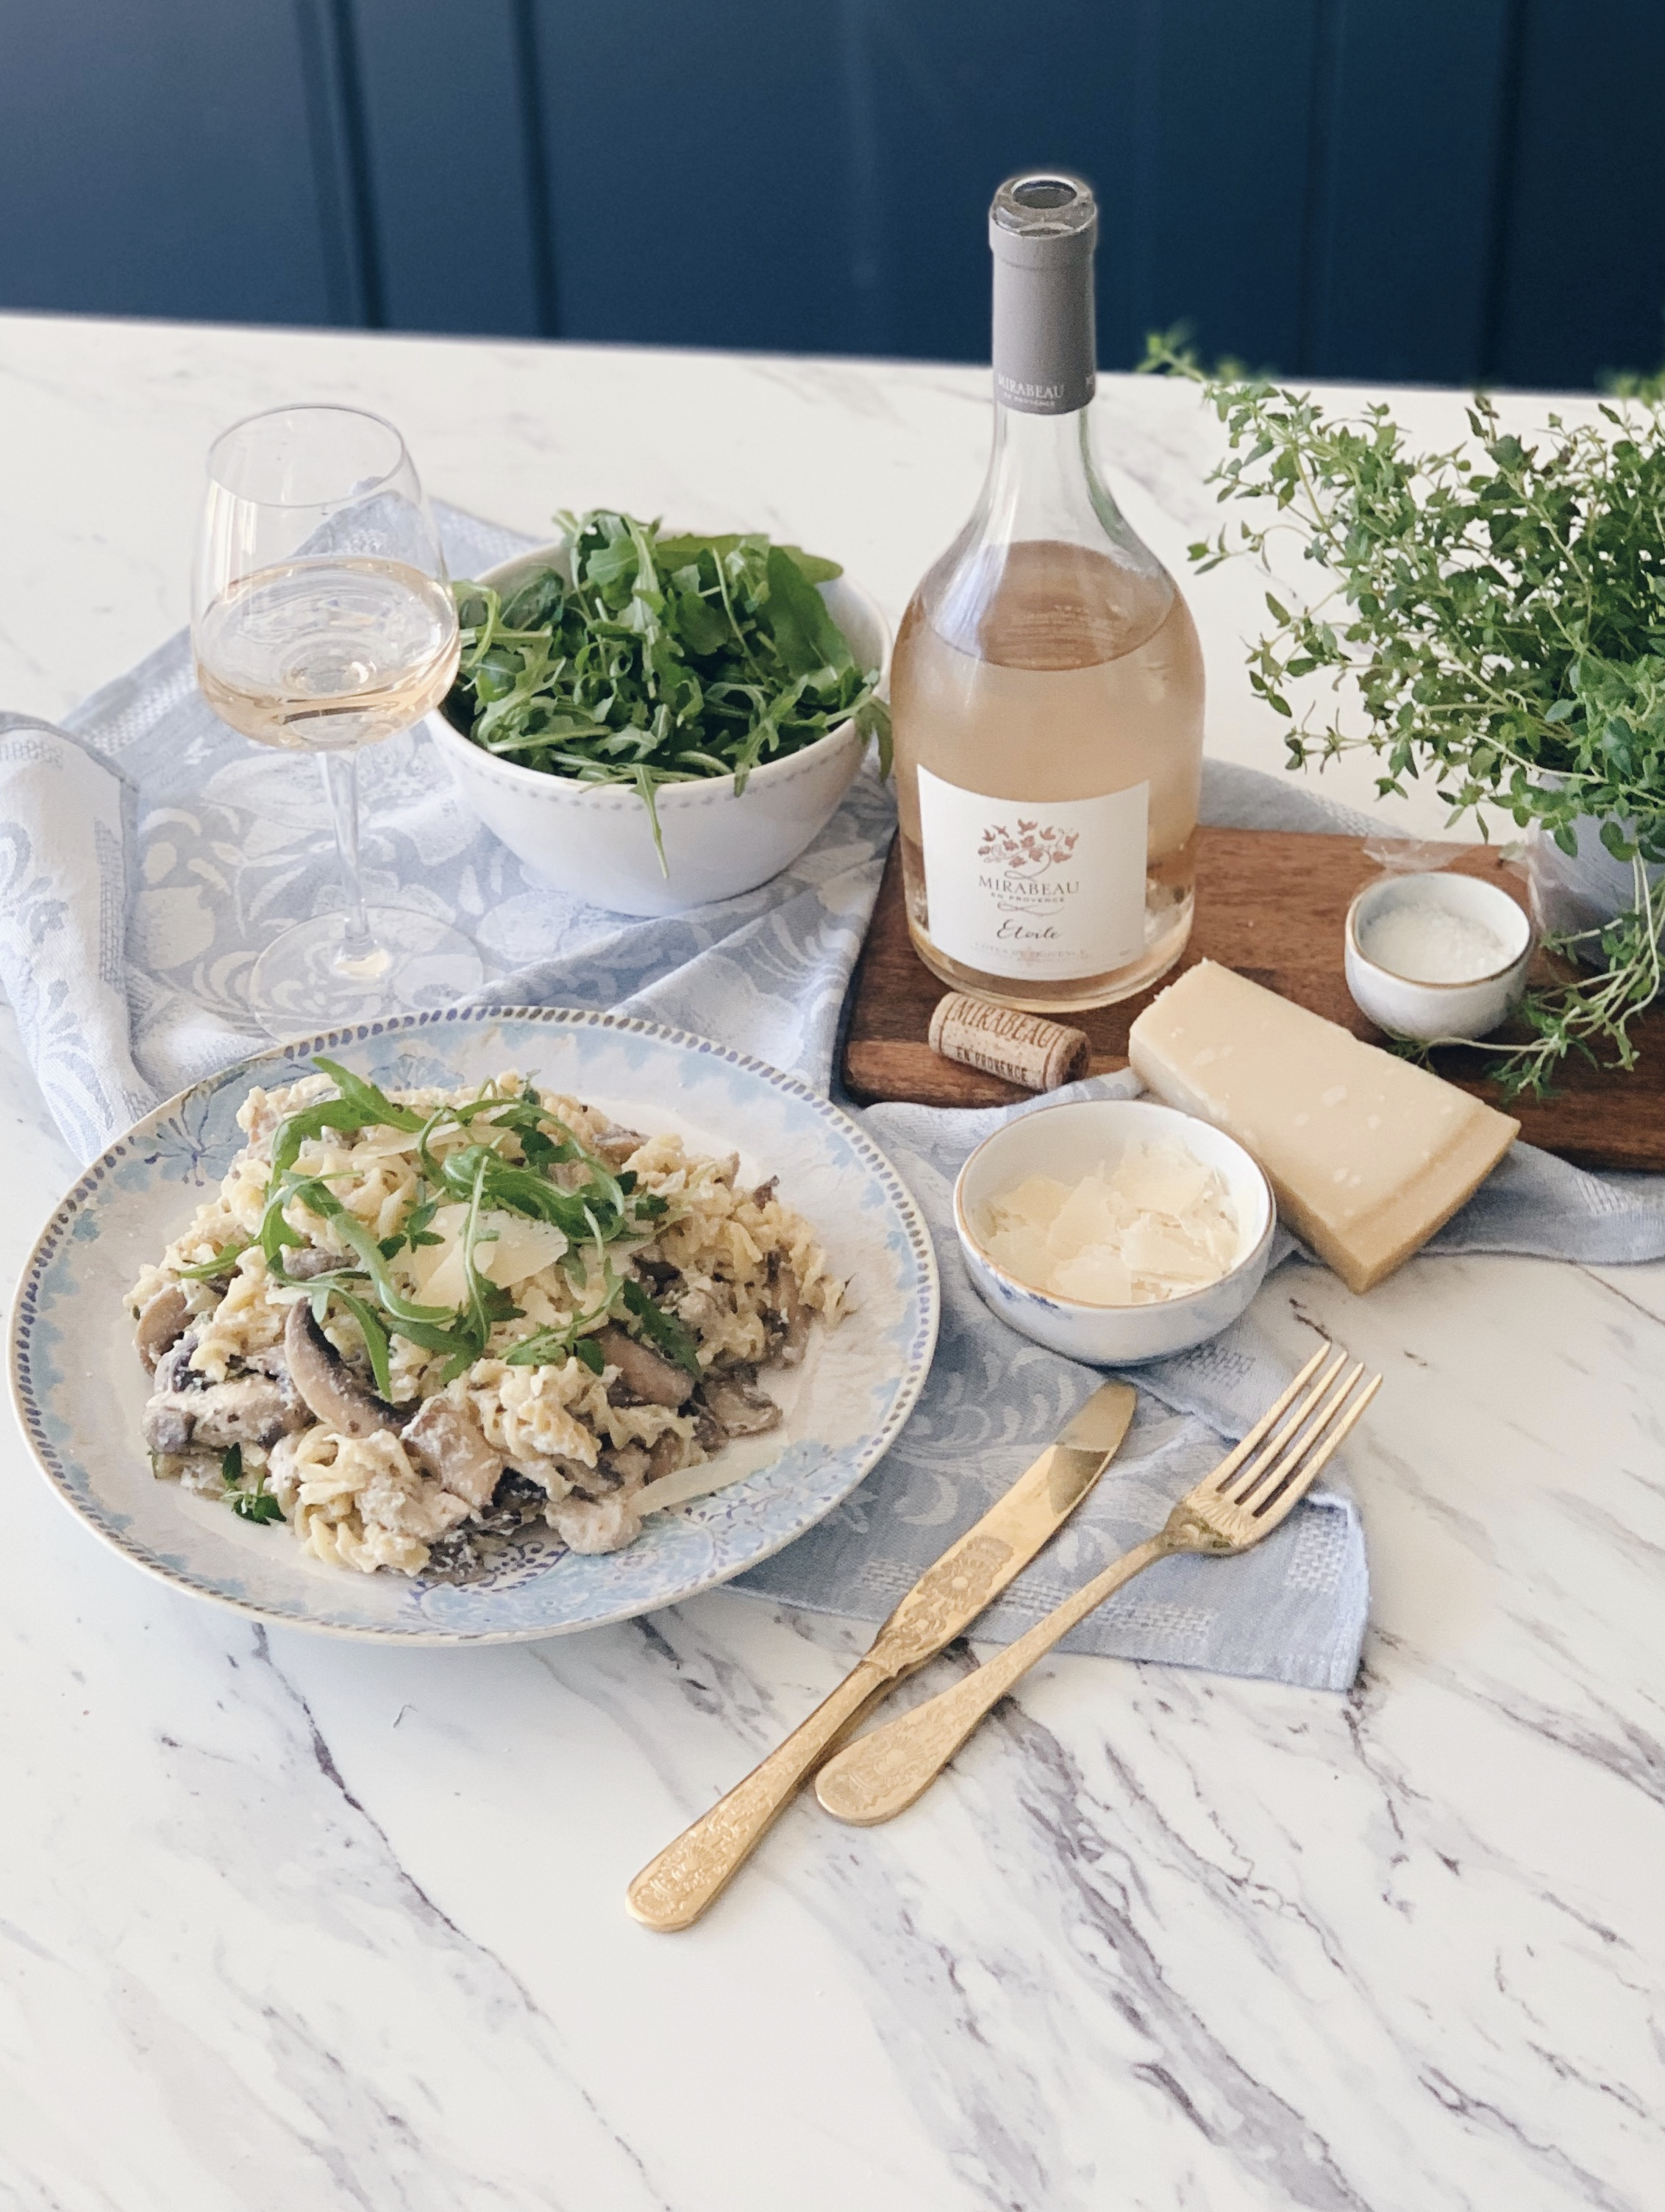 Mirabeau Rosé Etoile - Food Styling Mushroom and Chicken Pasta